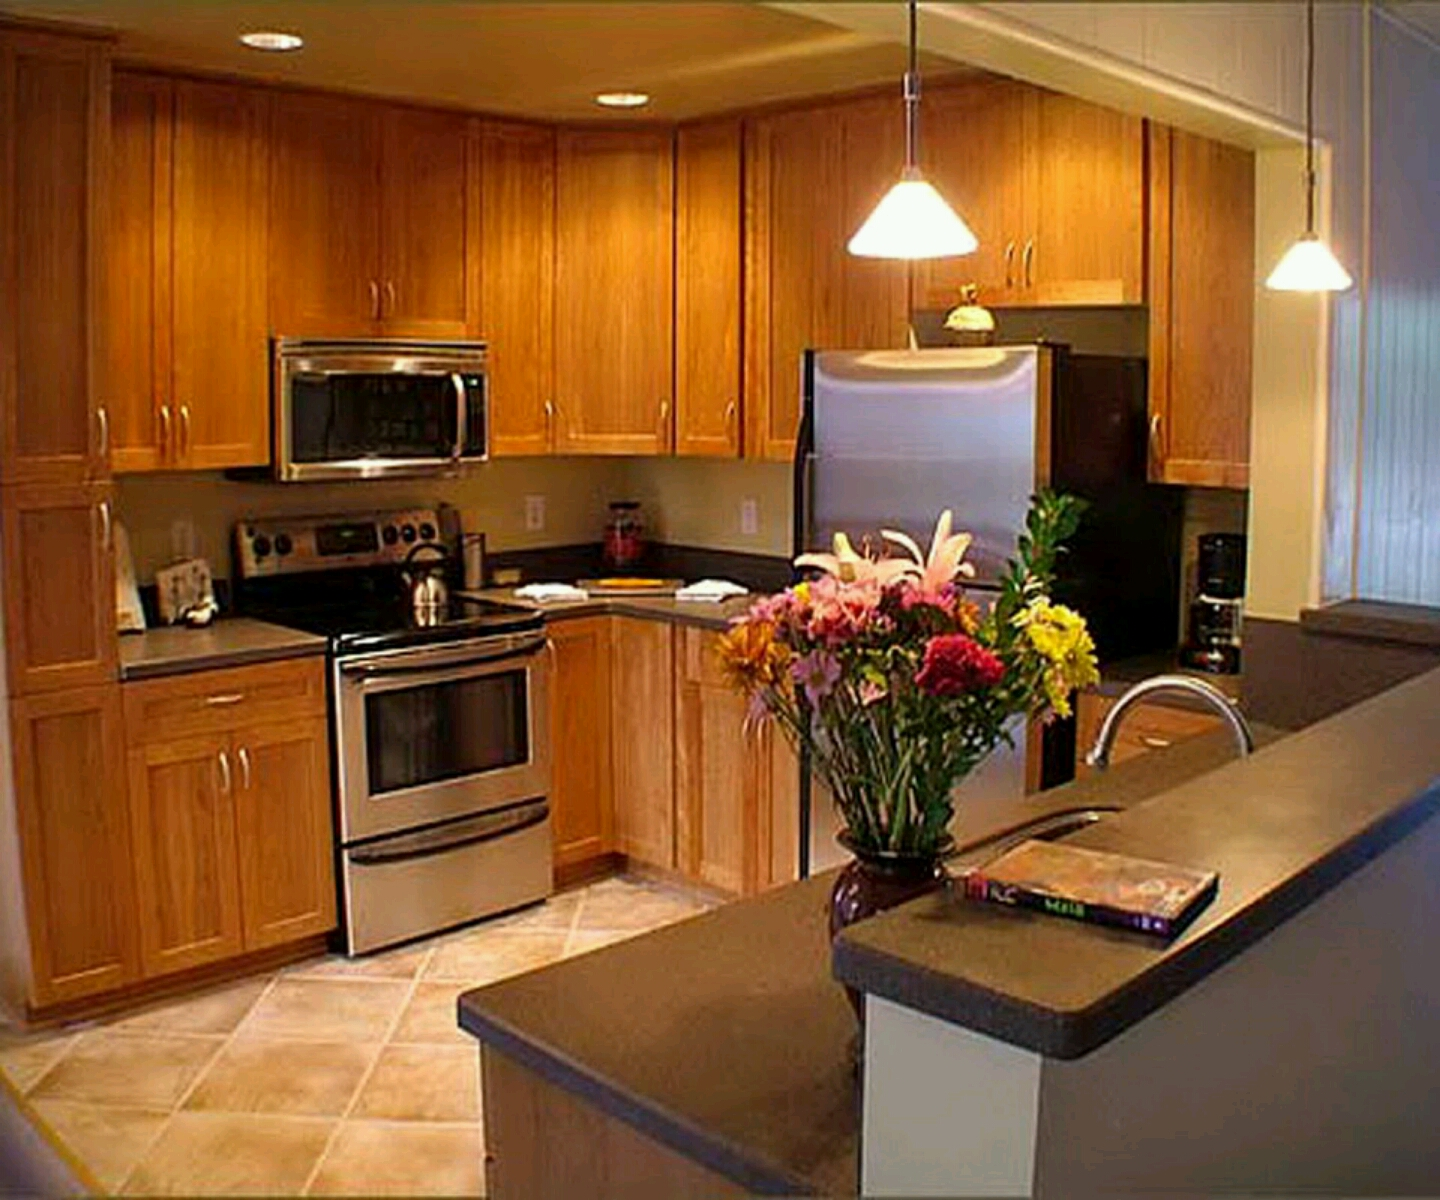 Contemporary Wooden Kitchen Cabinets Bill House Plans